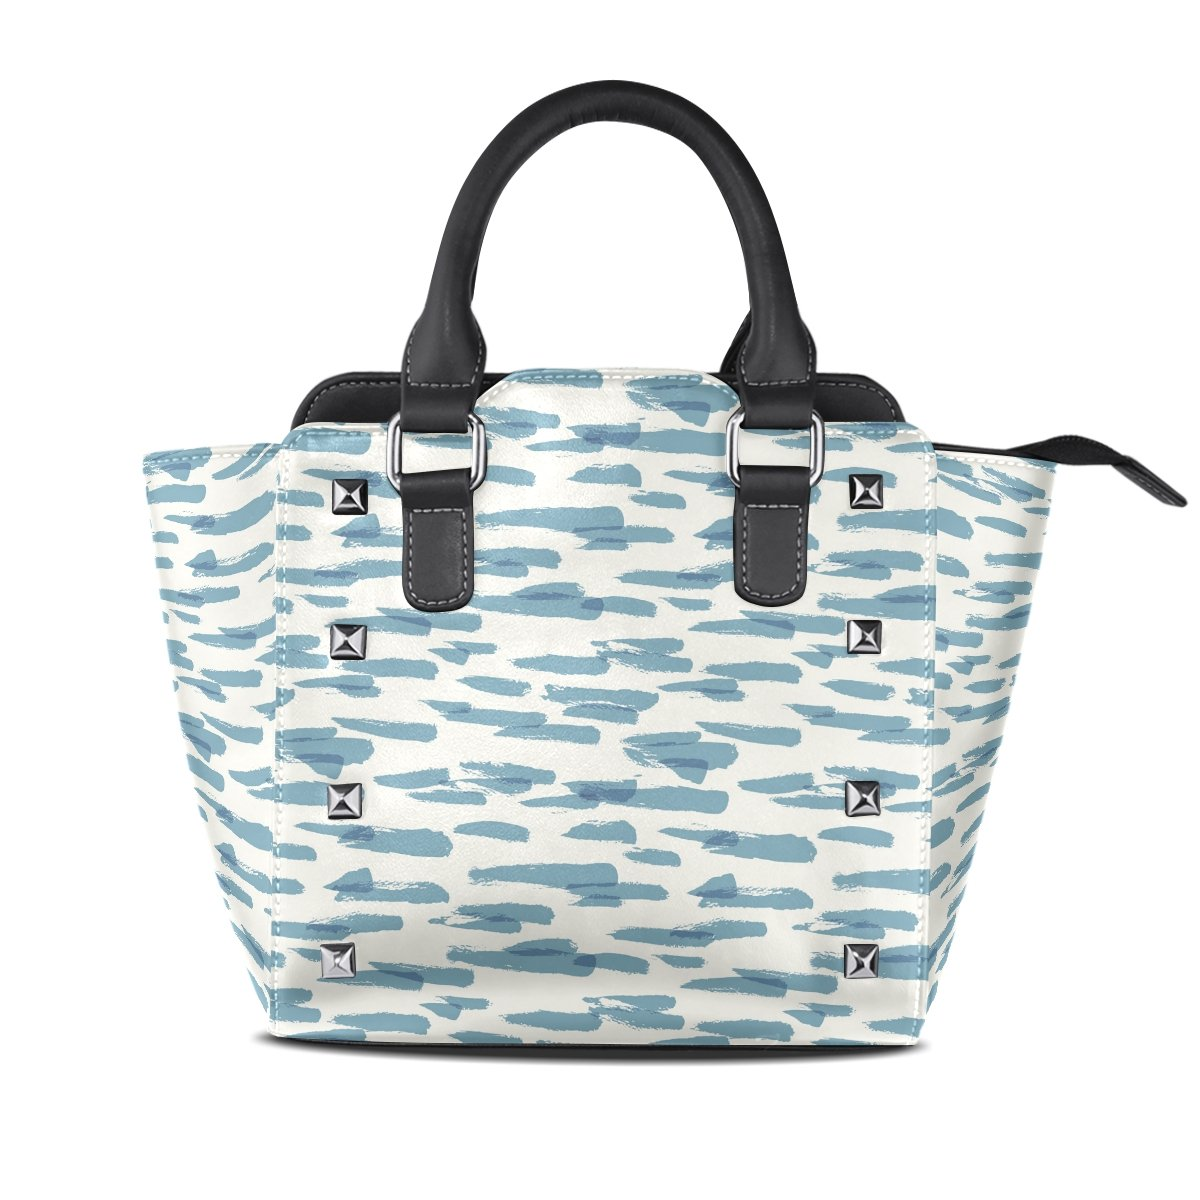 Womens Genuine Leather Hangbags Tote Bags bluee Pattern Purse Shoulder Bags